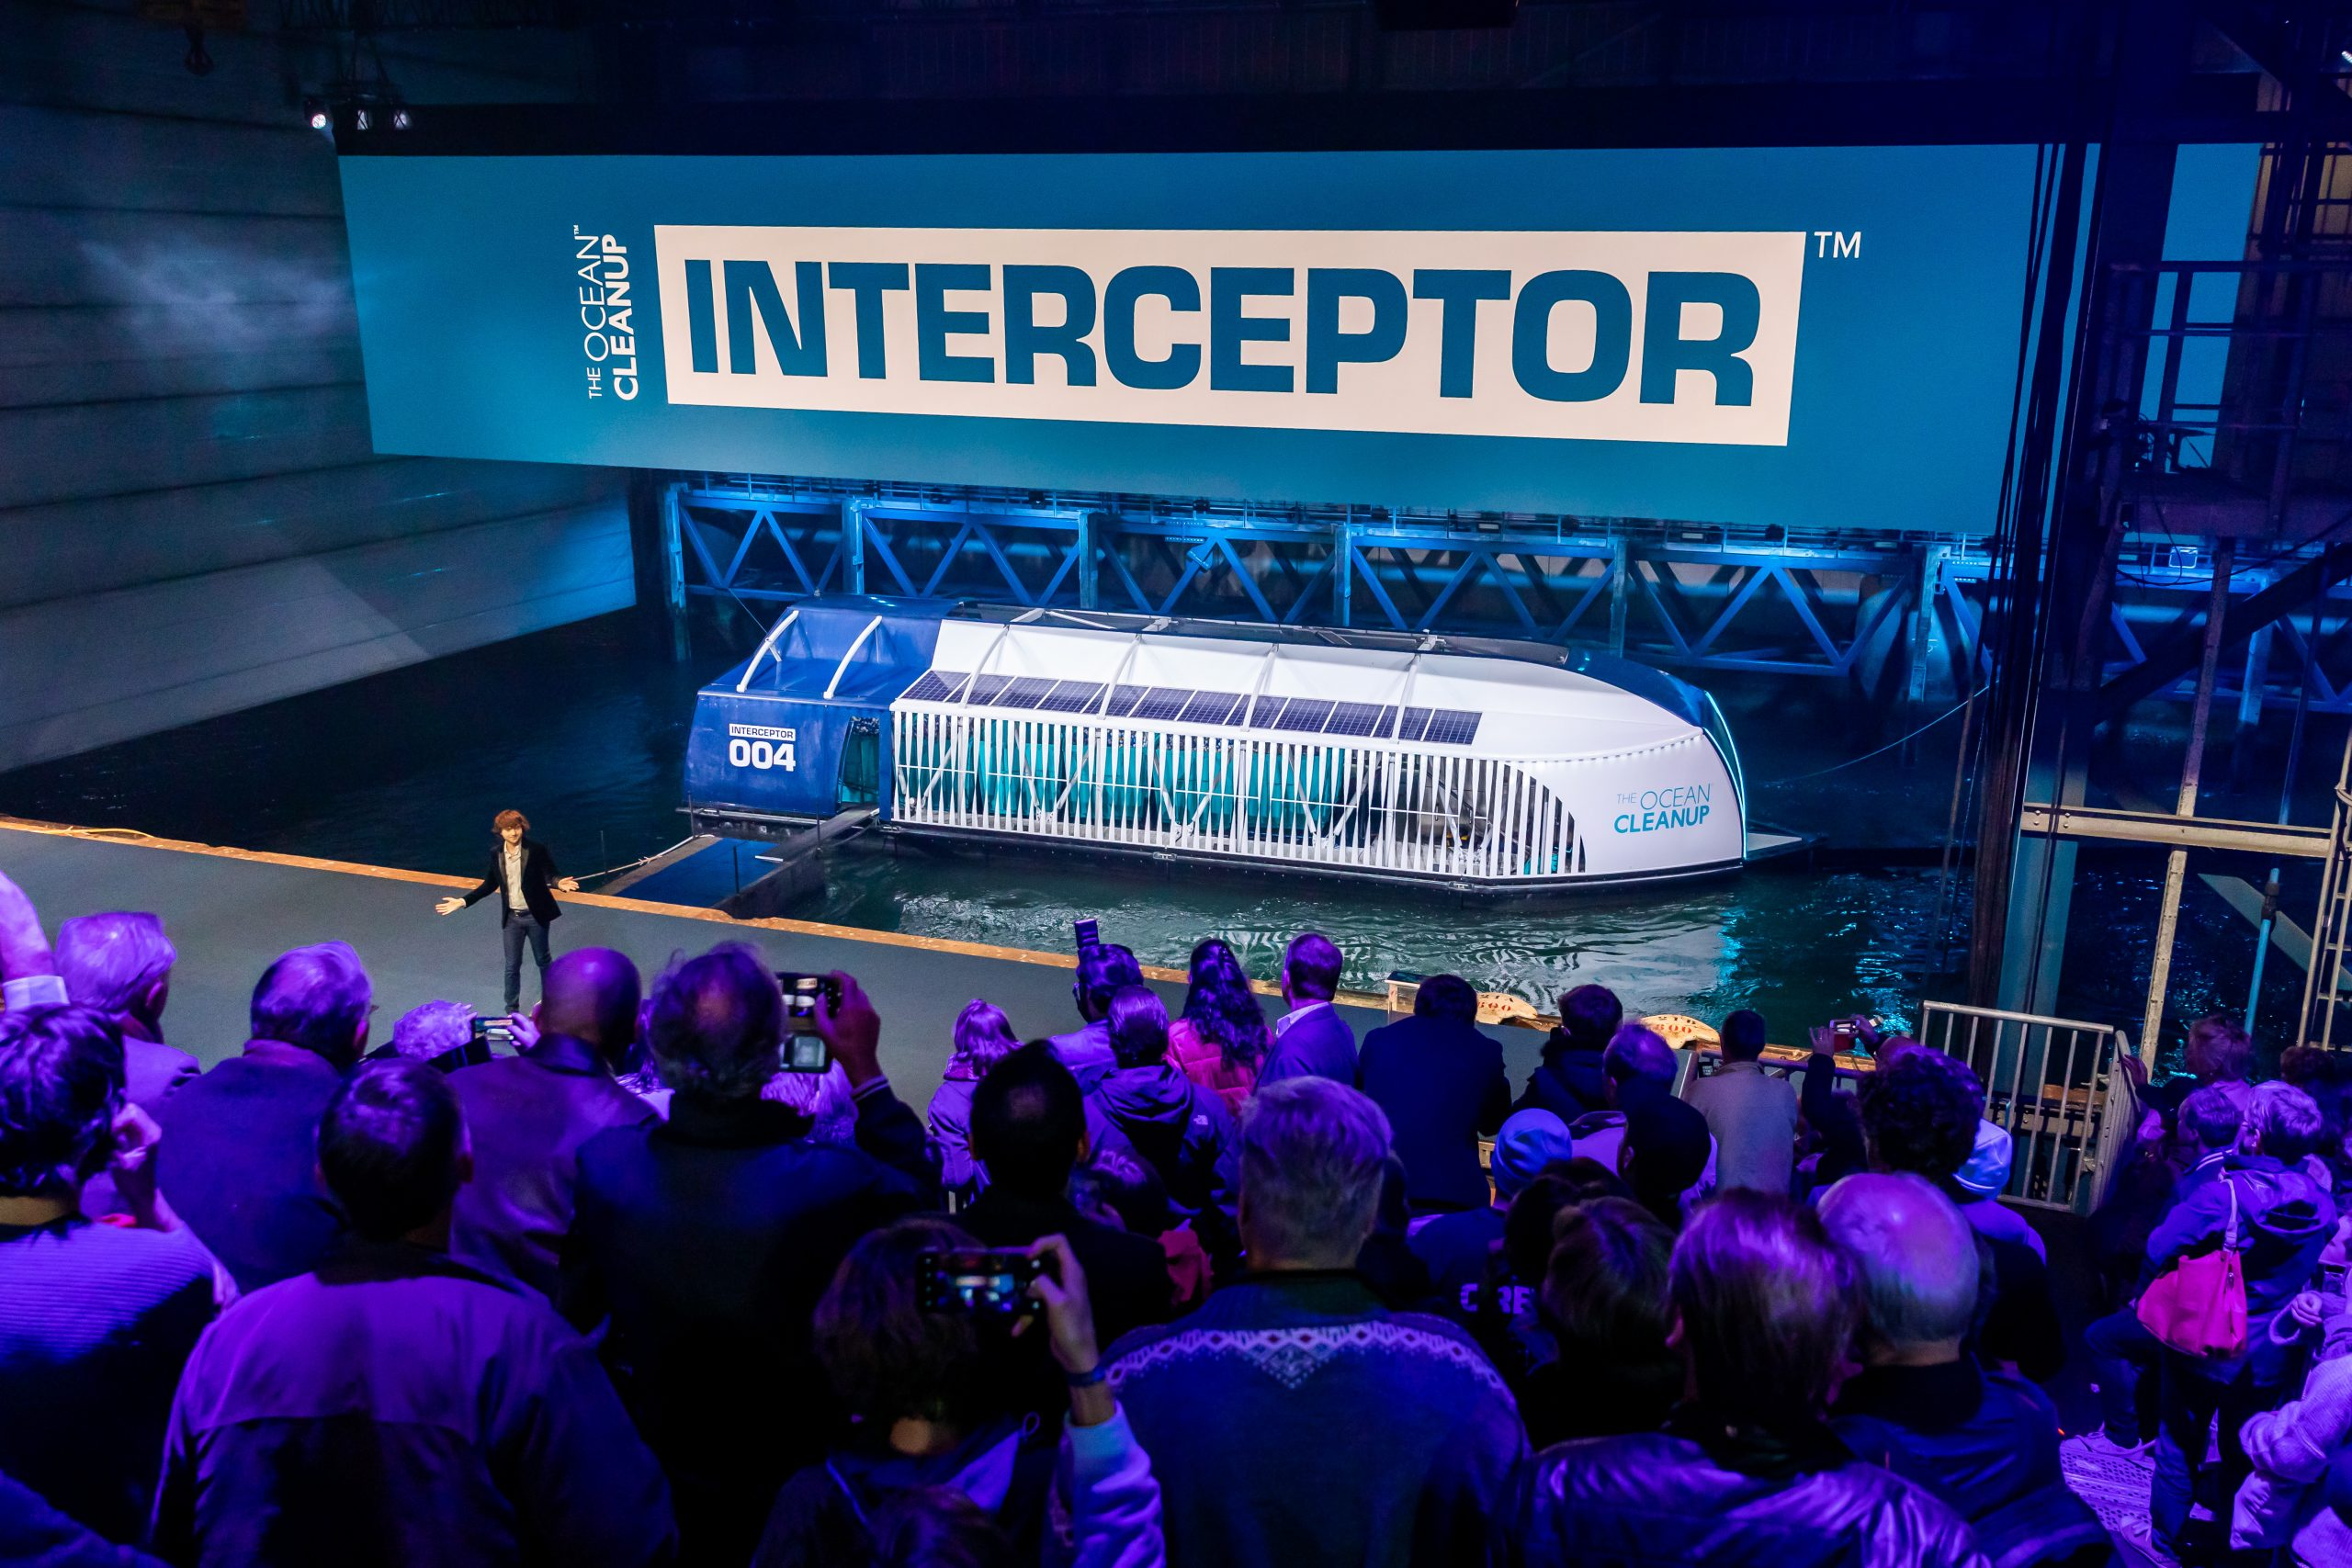 Rotterdam, October 26, 2019 – The Ocean Cleanup unveils the Interceptor, the first scalable river cleanup technology.